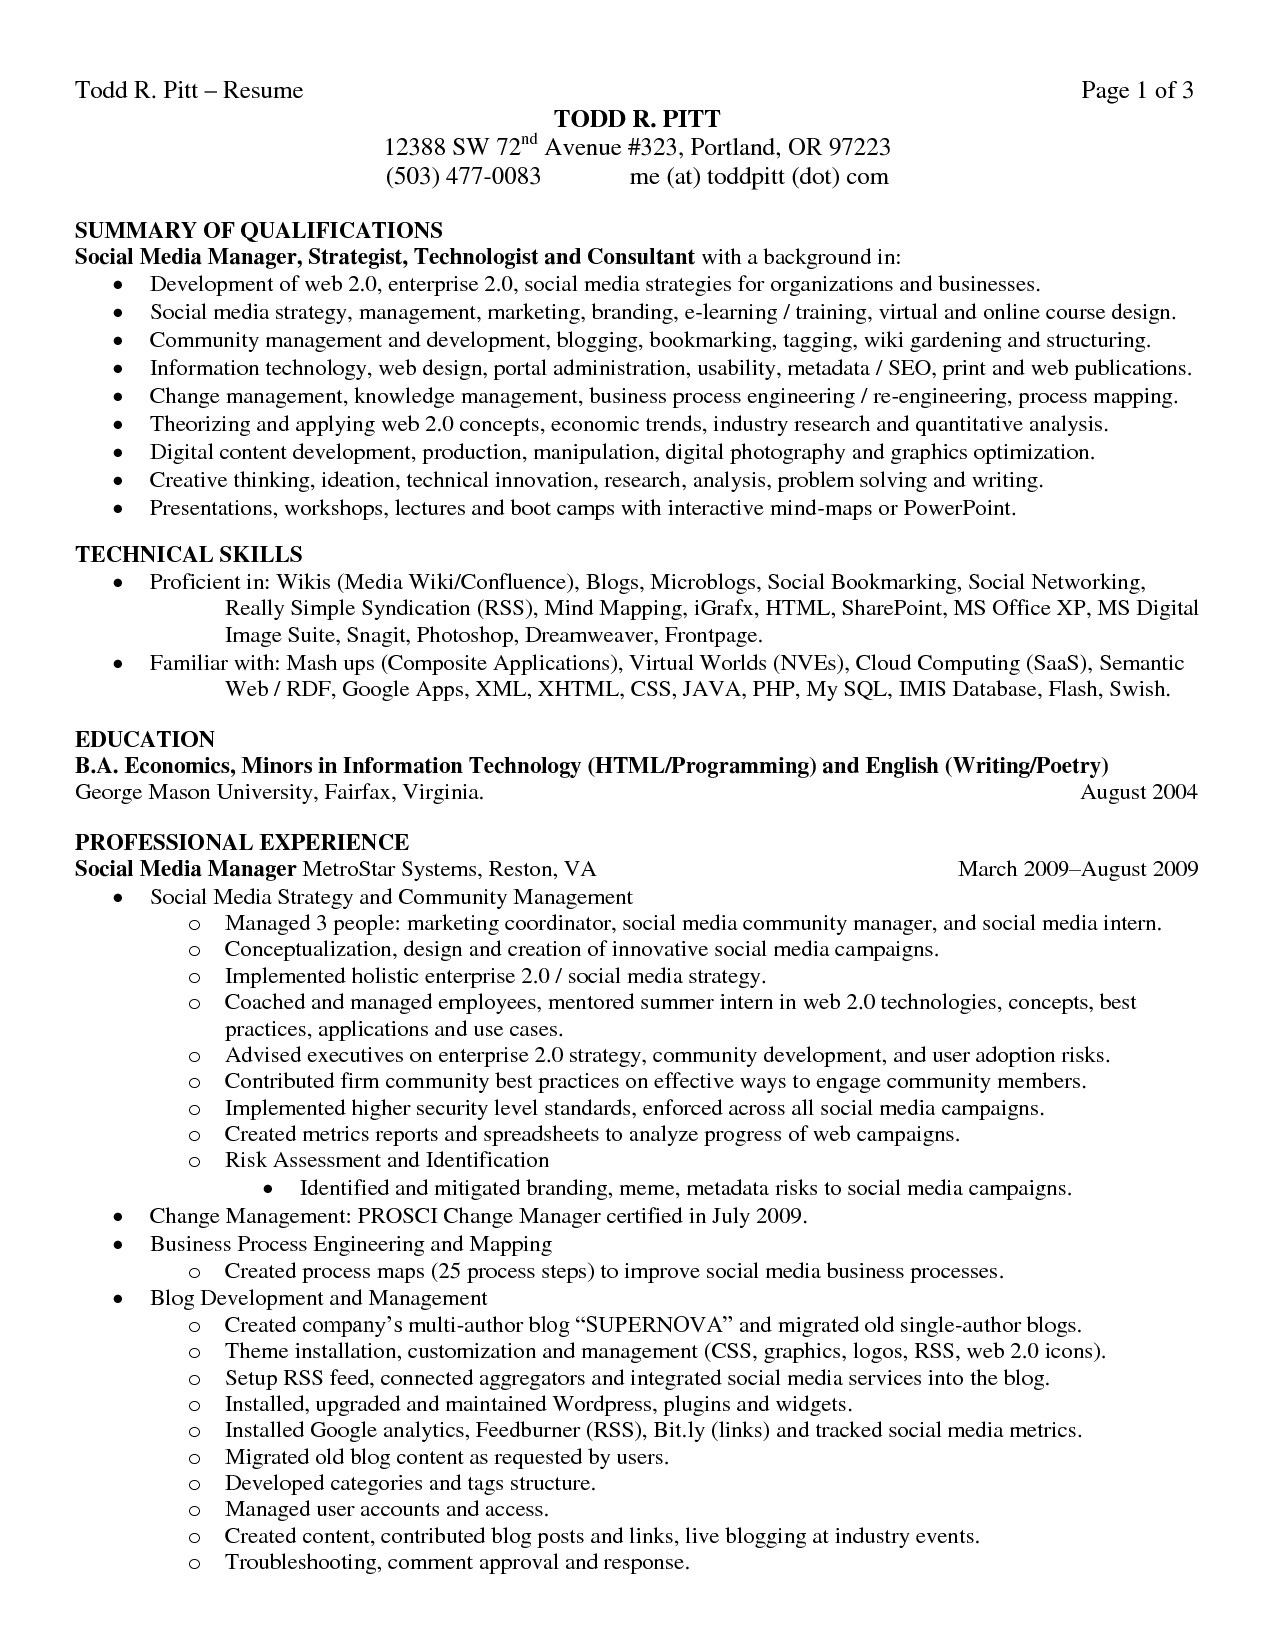 summary for job resumes